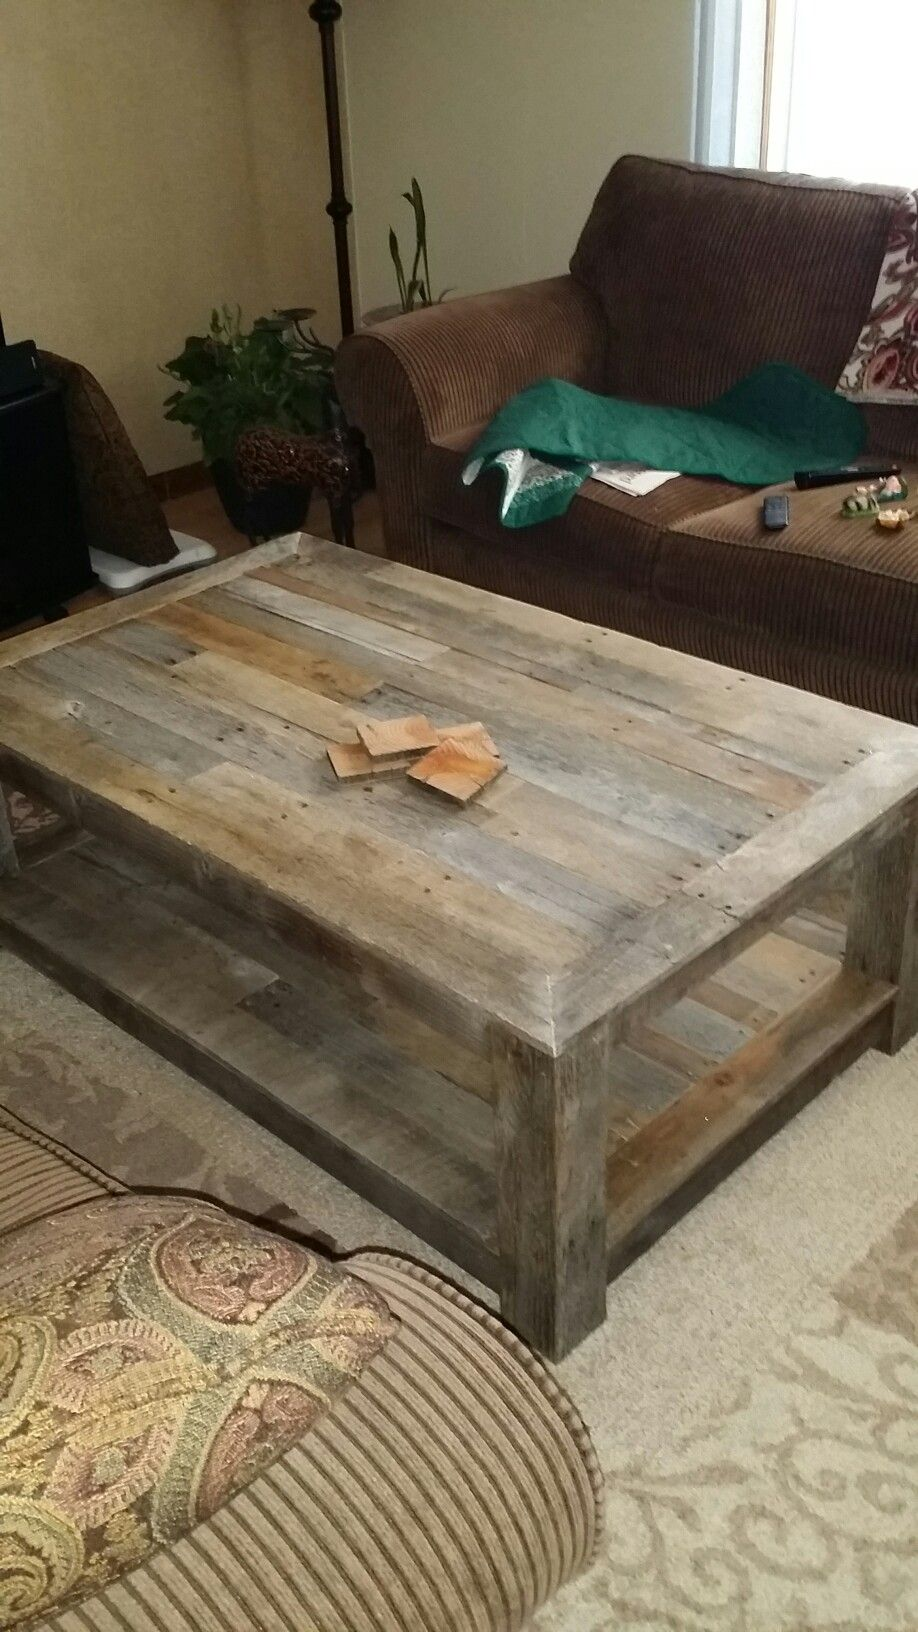 Pallet Wood Coffee Table Created Out Of Red Oak Pallets That Laid Out In The Wyoming Sun For Pallet Wood Coffee Table Coffee Table Out Of Pallets Coffee Table [ 1632 x 918 Pixel ]